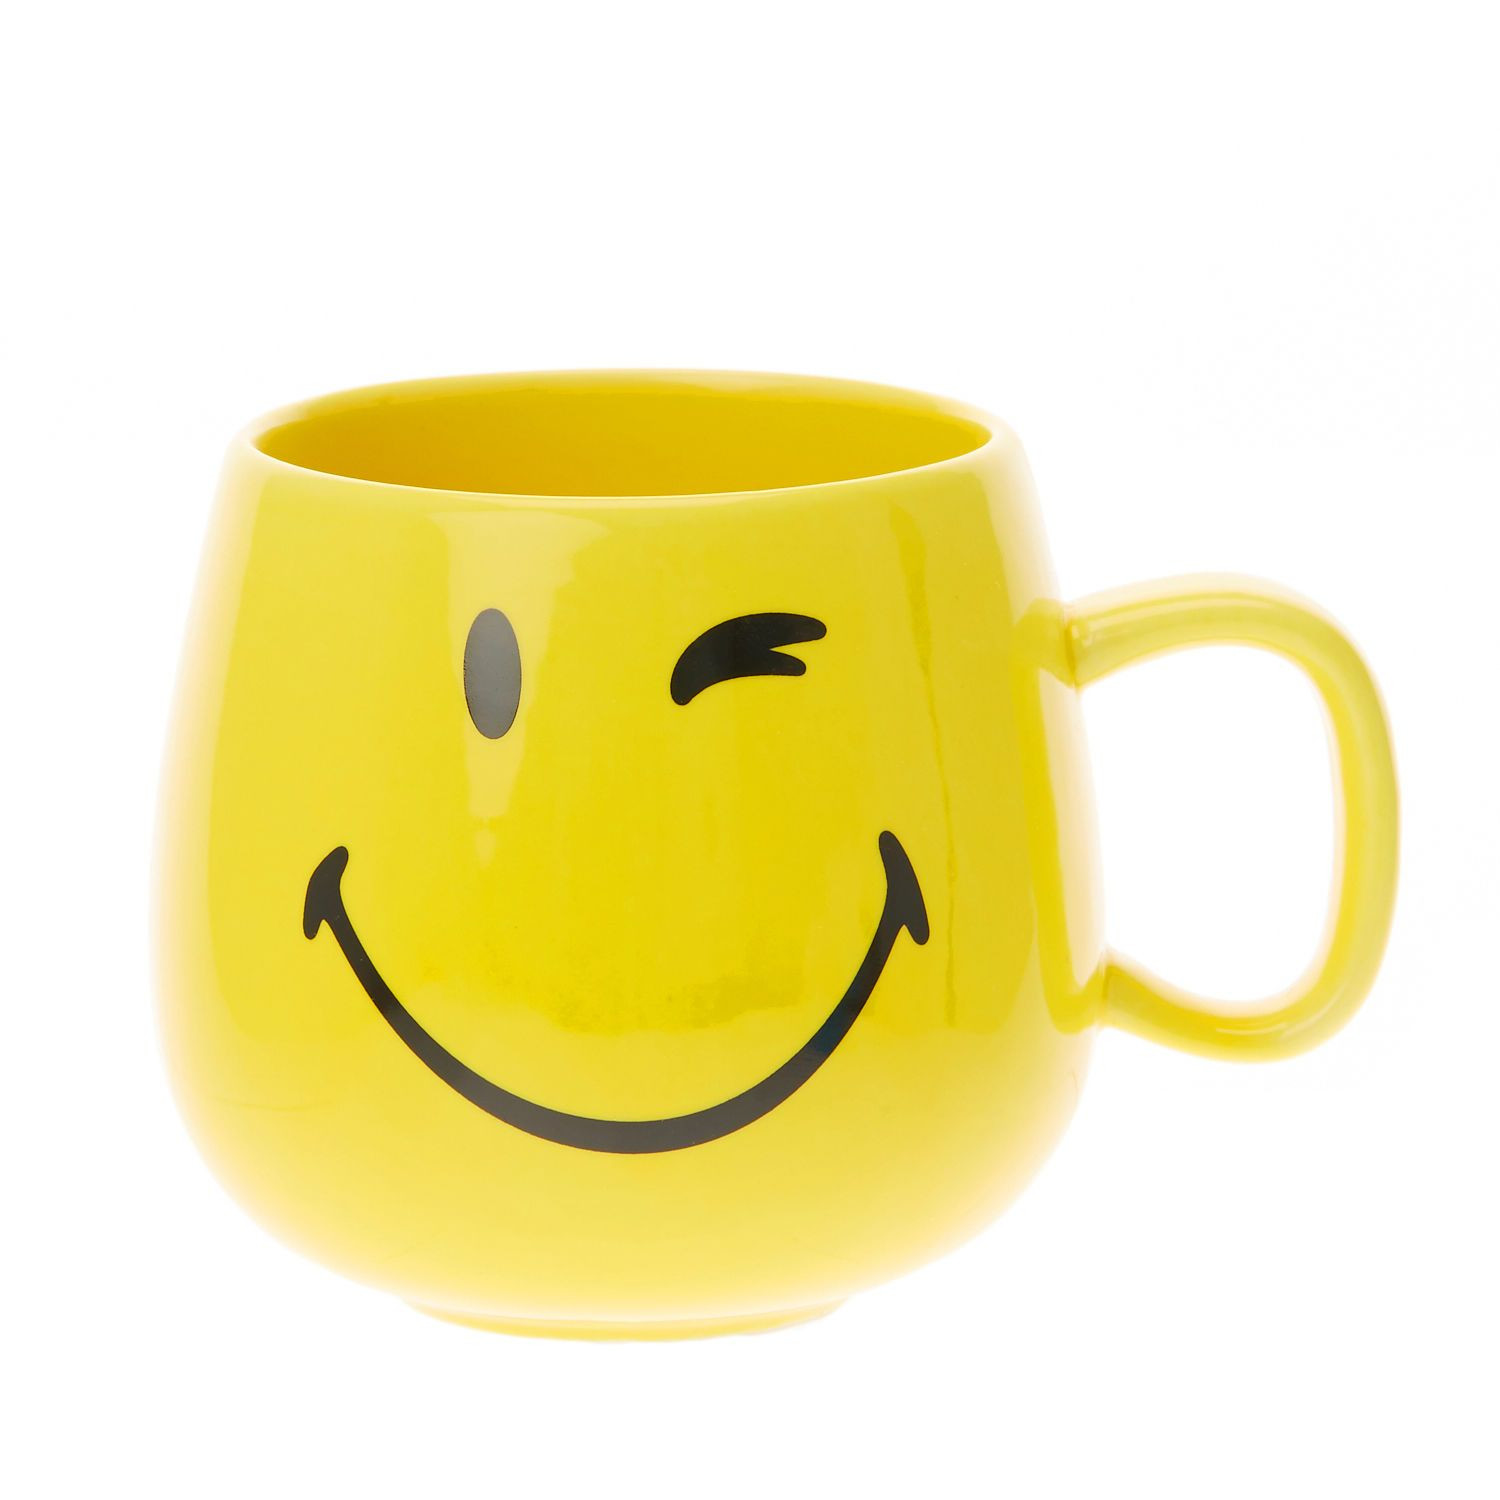 12 Nice Yellow Smiley Face Vase 2021 free download yellow smiley face vase of yellow smiley face cup with flowers gardening flower and vegetables regarding yellow smiley world face mug claires